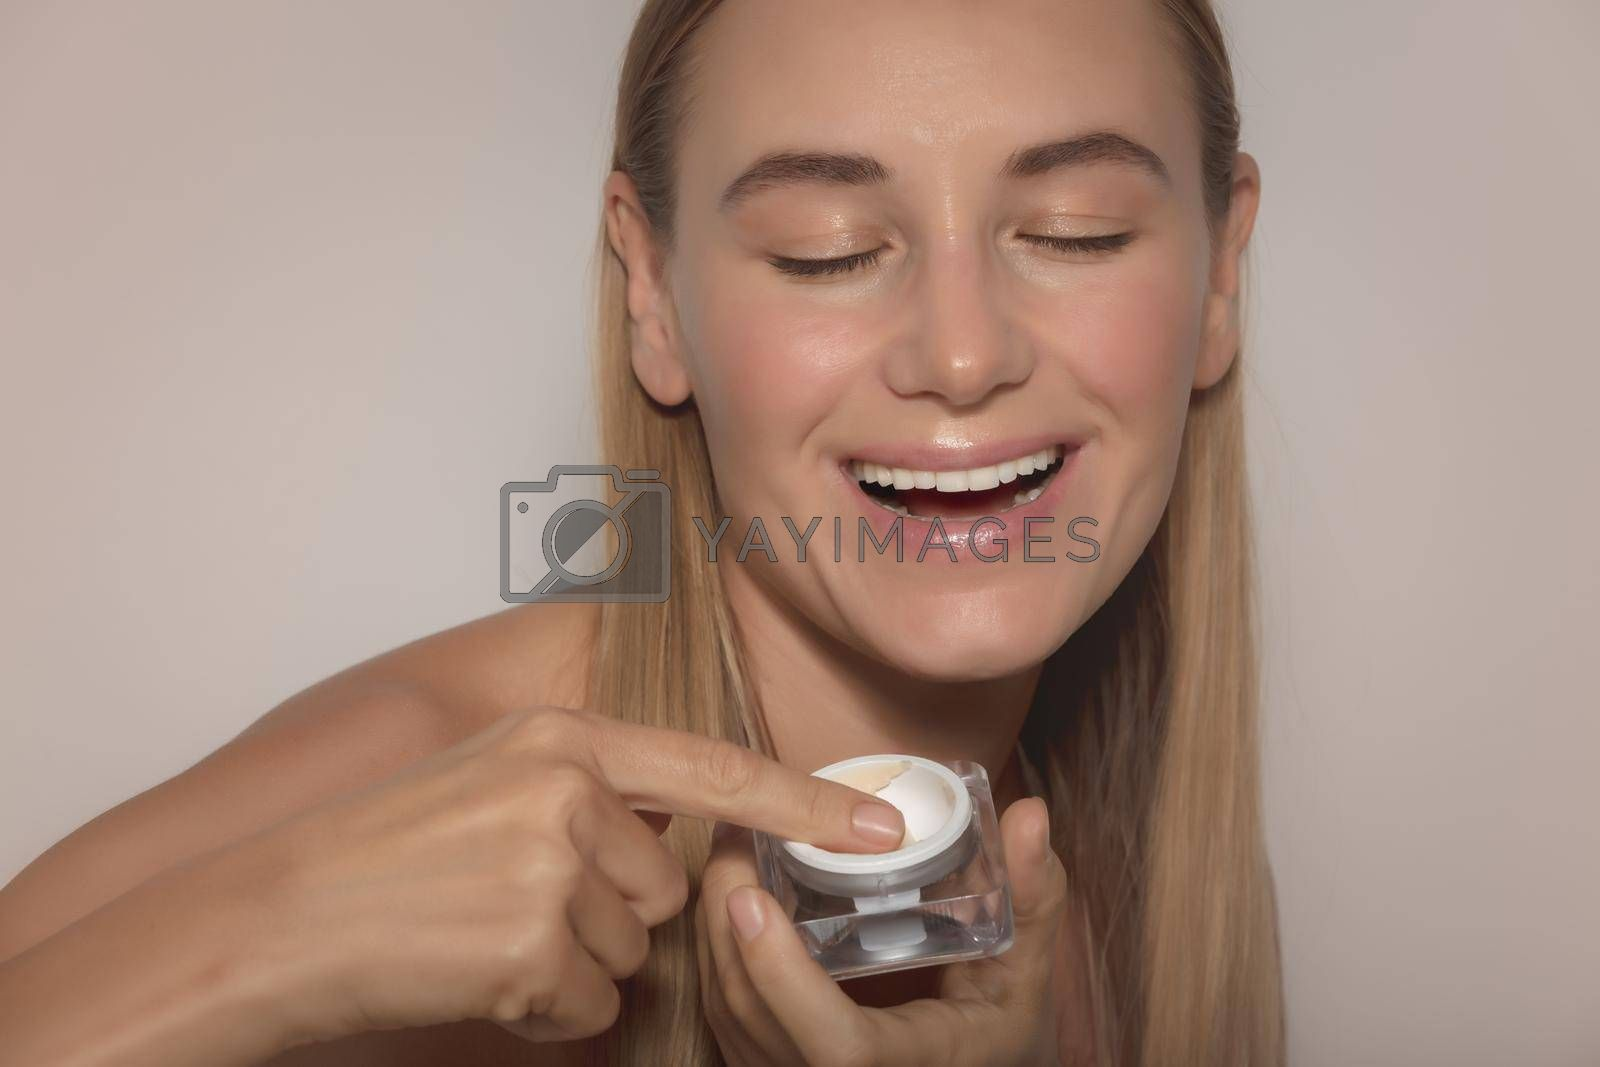 Portrait of a Happy Smiling Woman Uses Facial Cream. Face Isolated on Beige Background. Anti-aging or Anti-wrinkle Product. Beauty and Skin Care Routine.